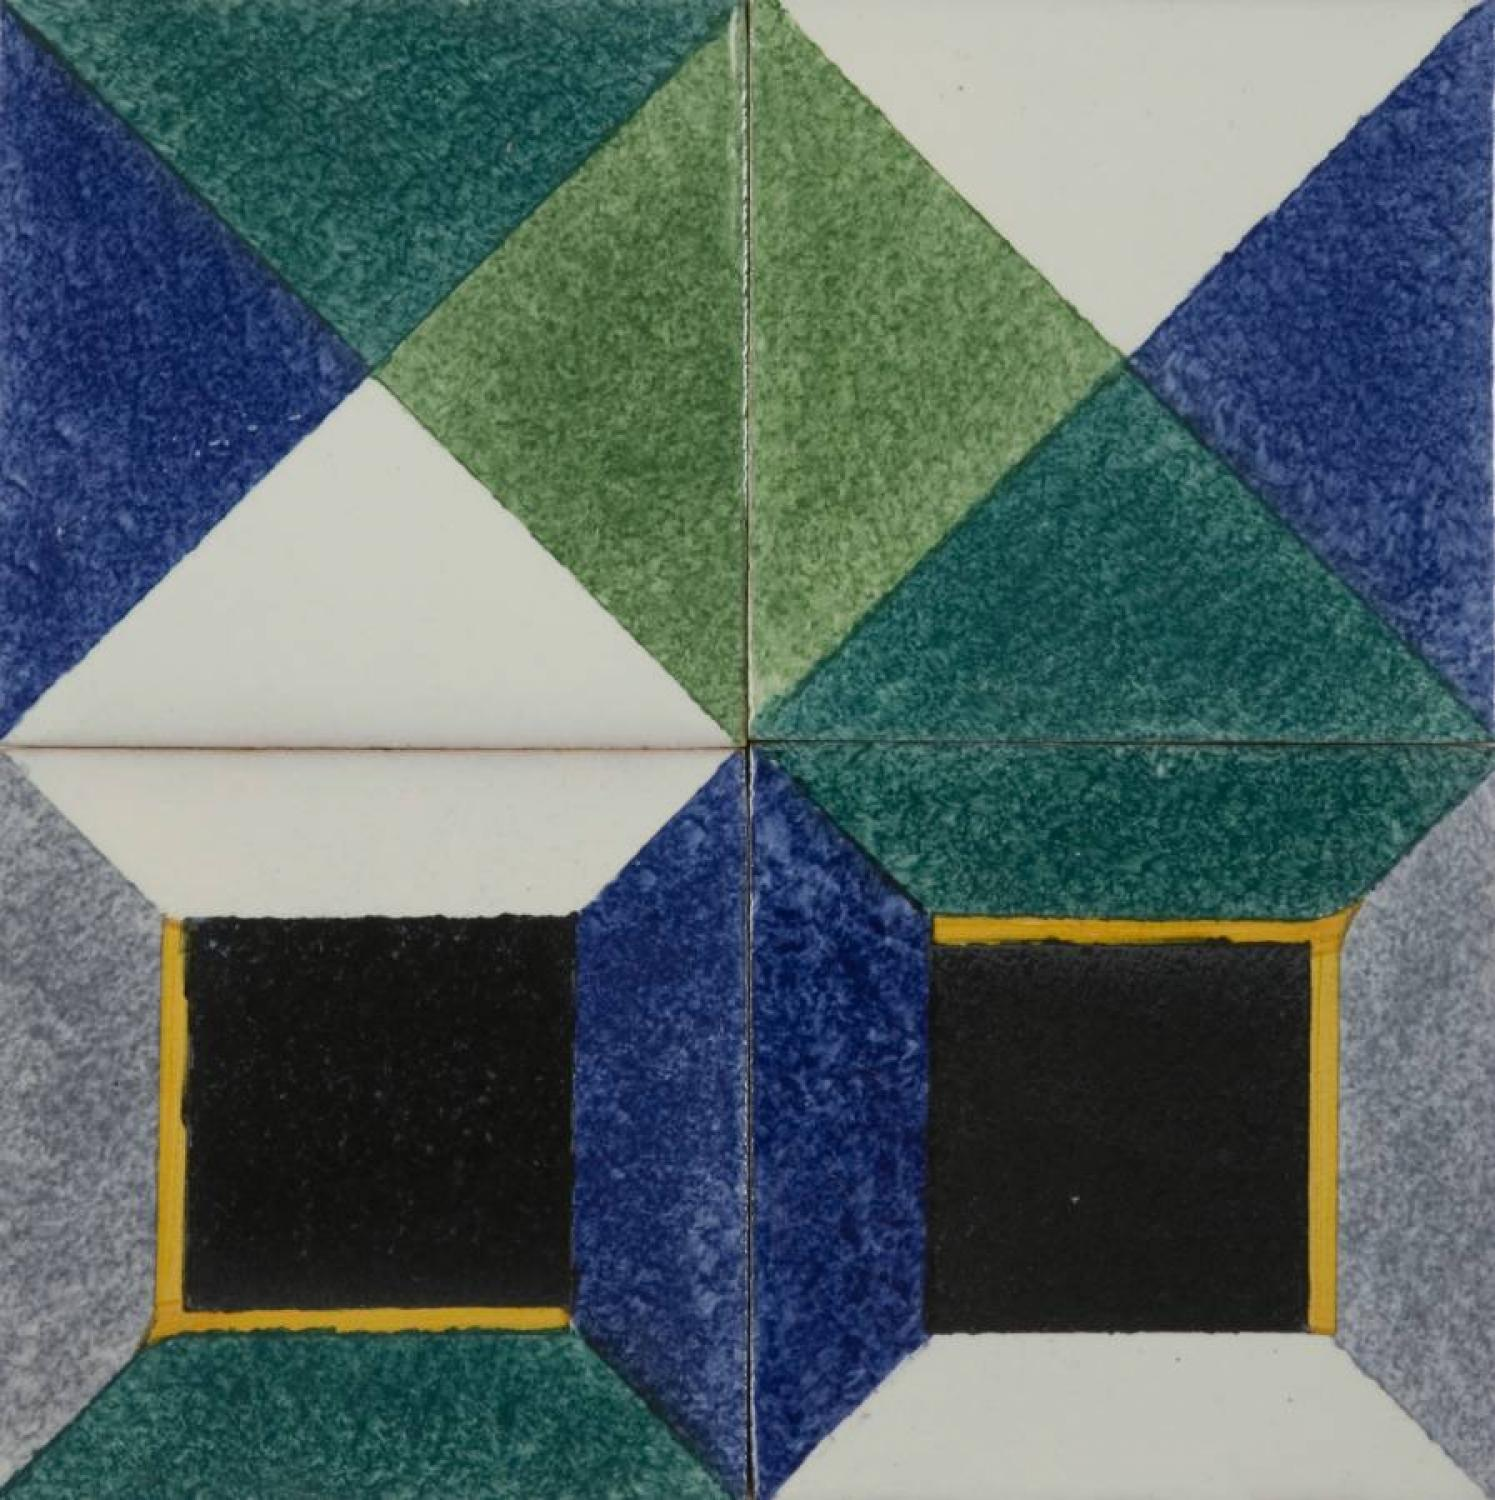 Ritz Bar 2 tile pattern 140x140mm